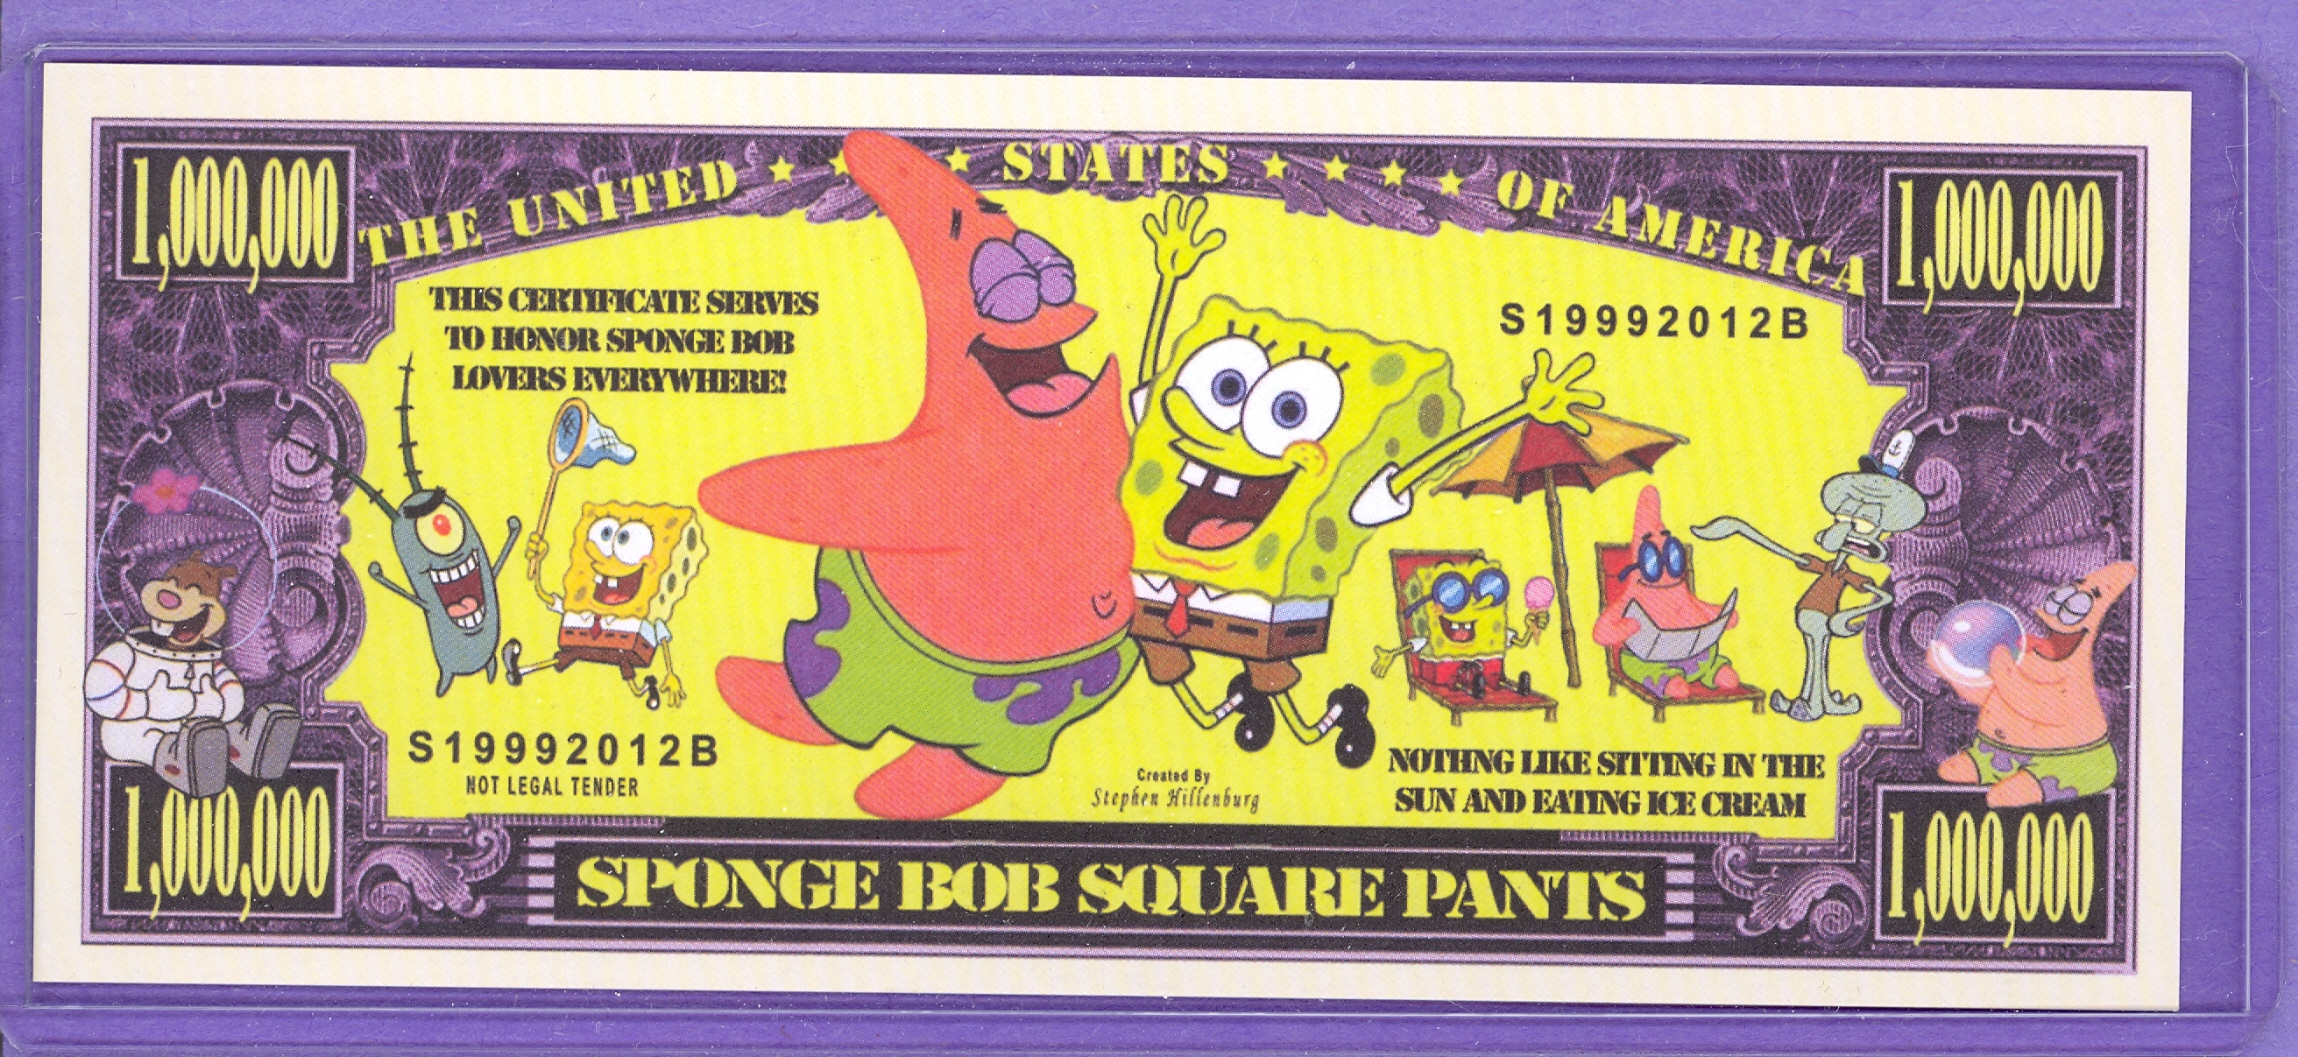 Sponge Bob Square Pants $1,000,000 Novelty Note